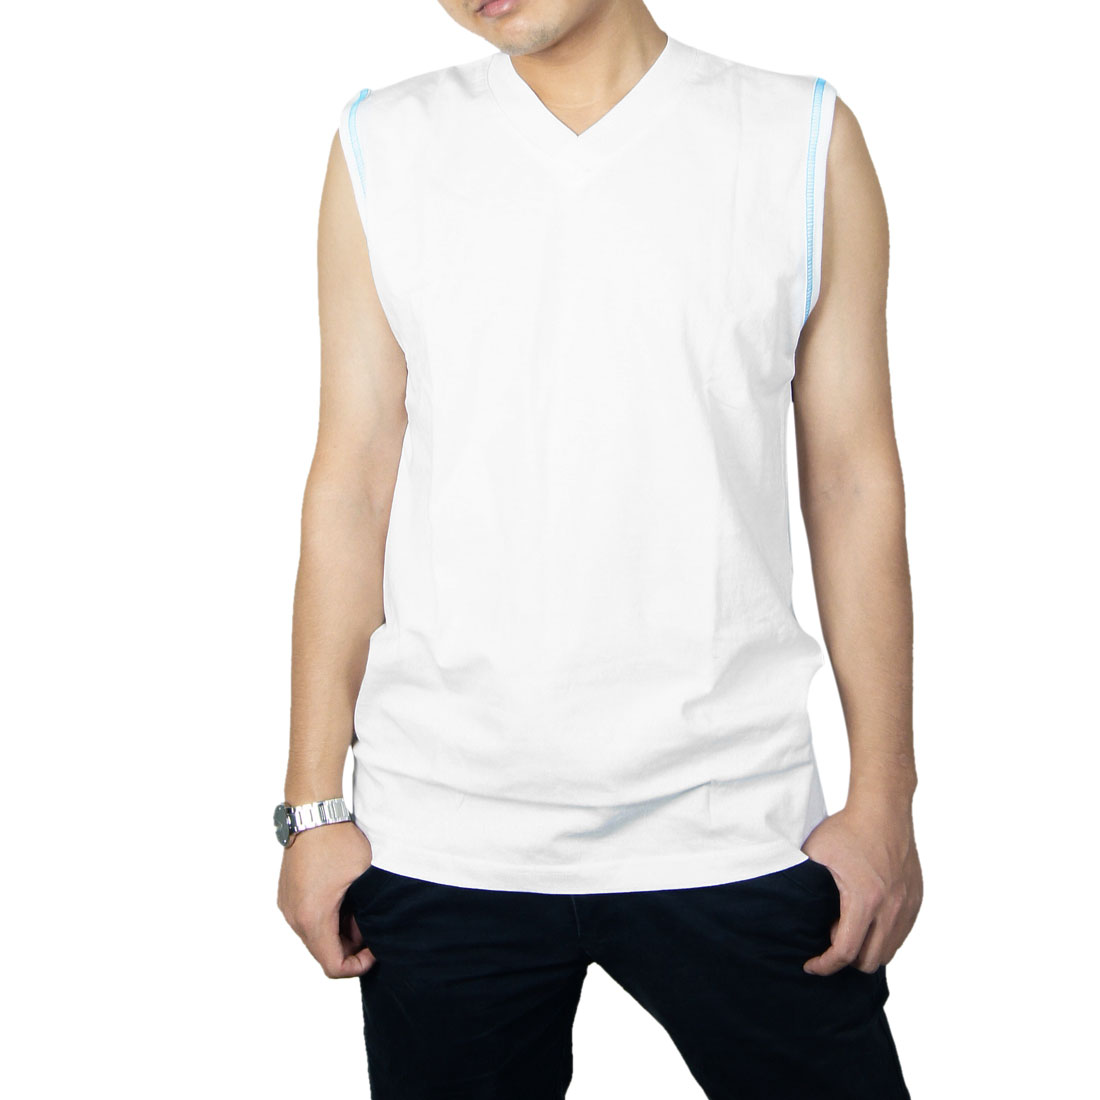 Mens Casual Summer Stretchy White Sleeveless V Neck 2012 NEW Fashion Tank Tops XS